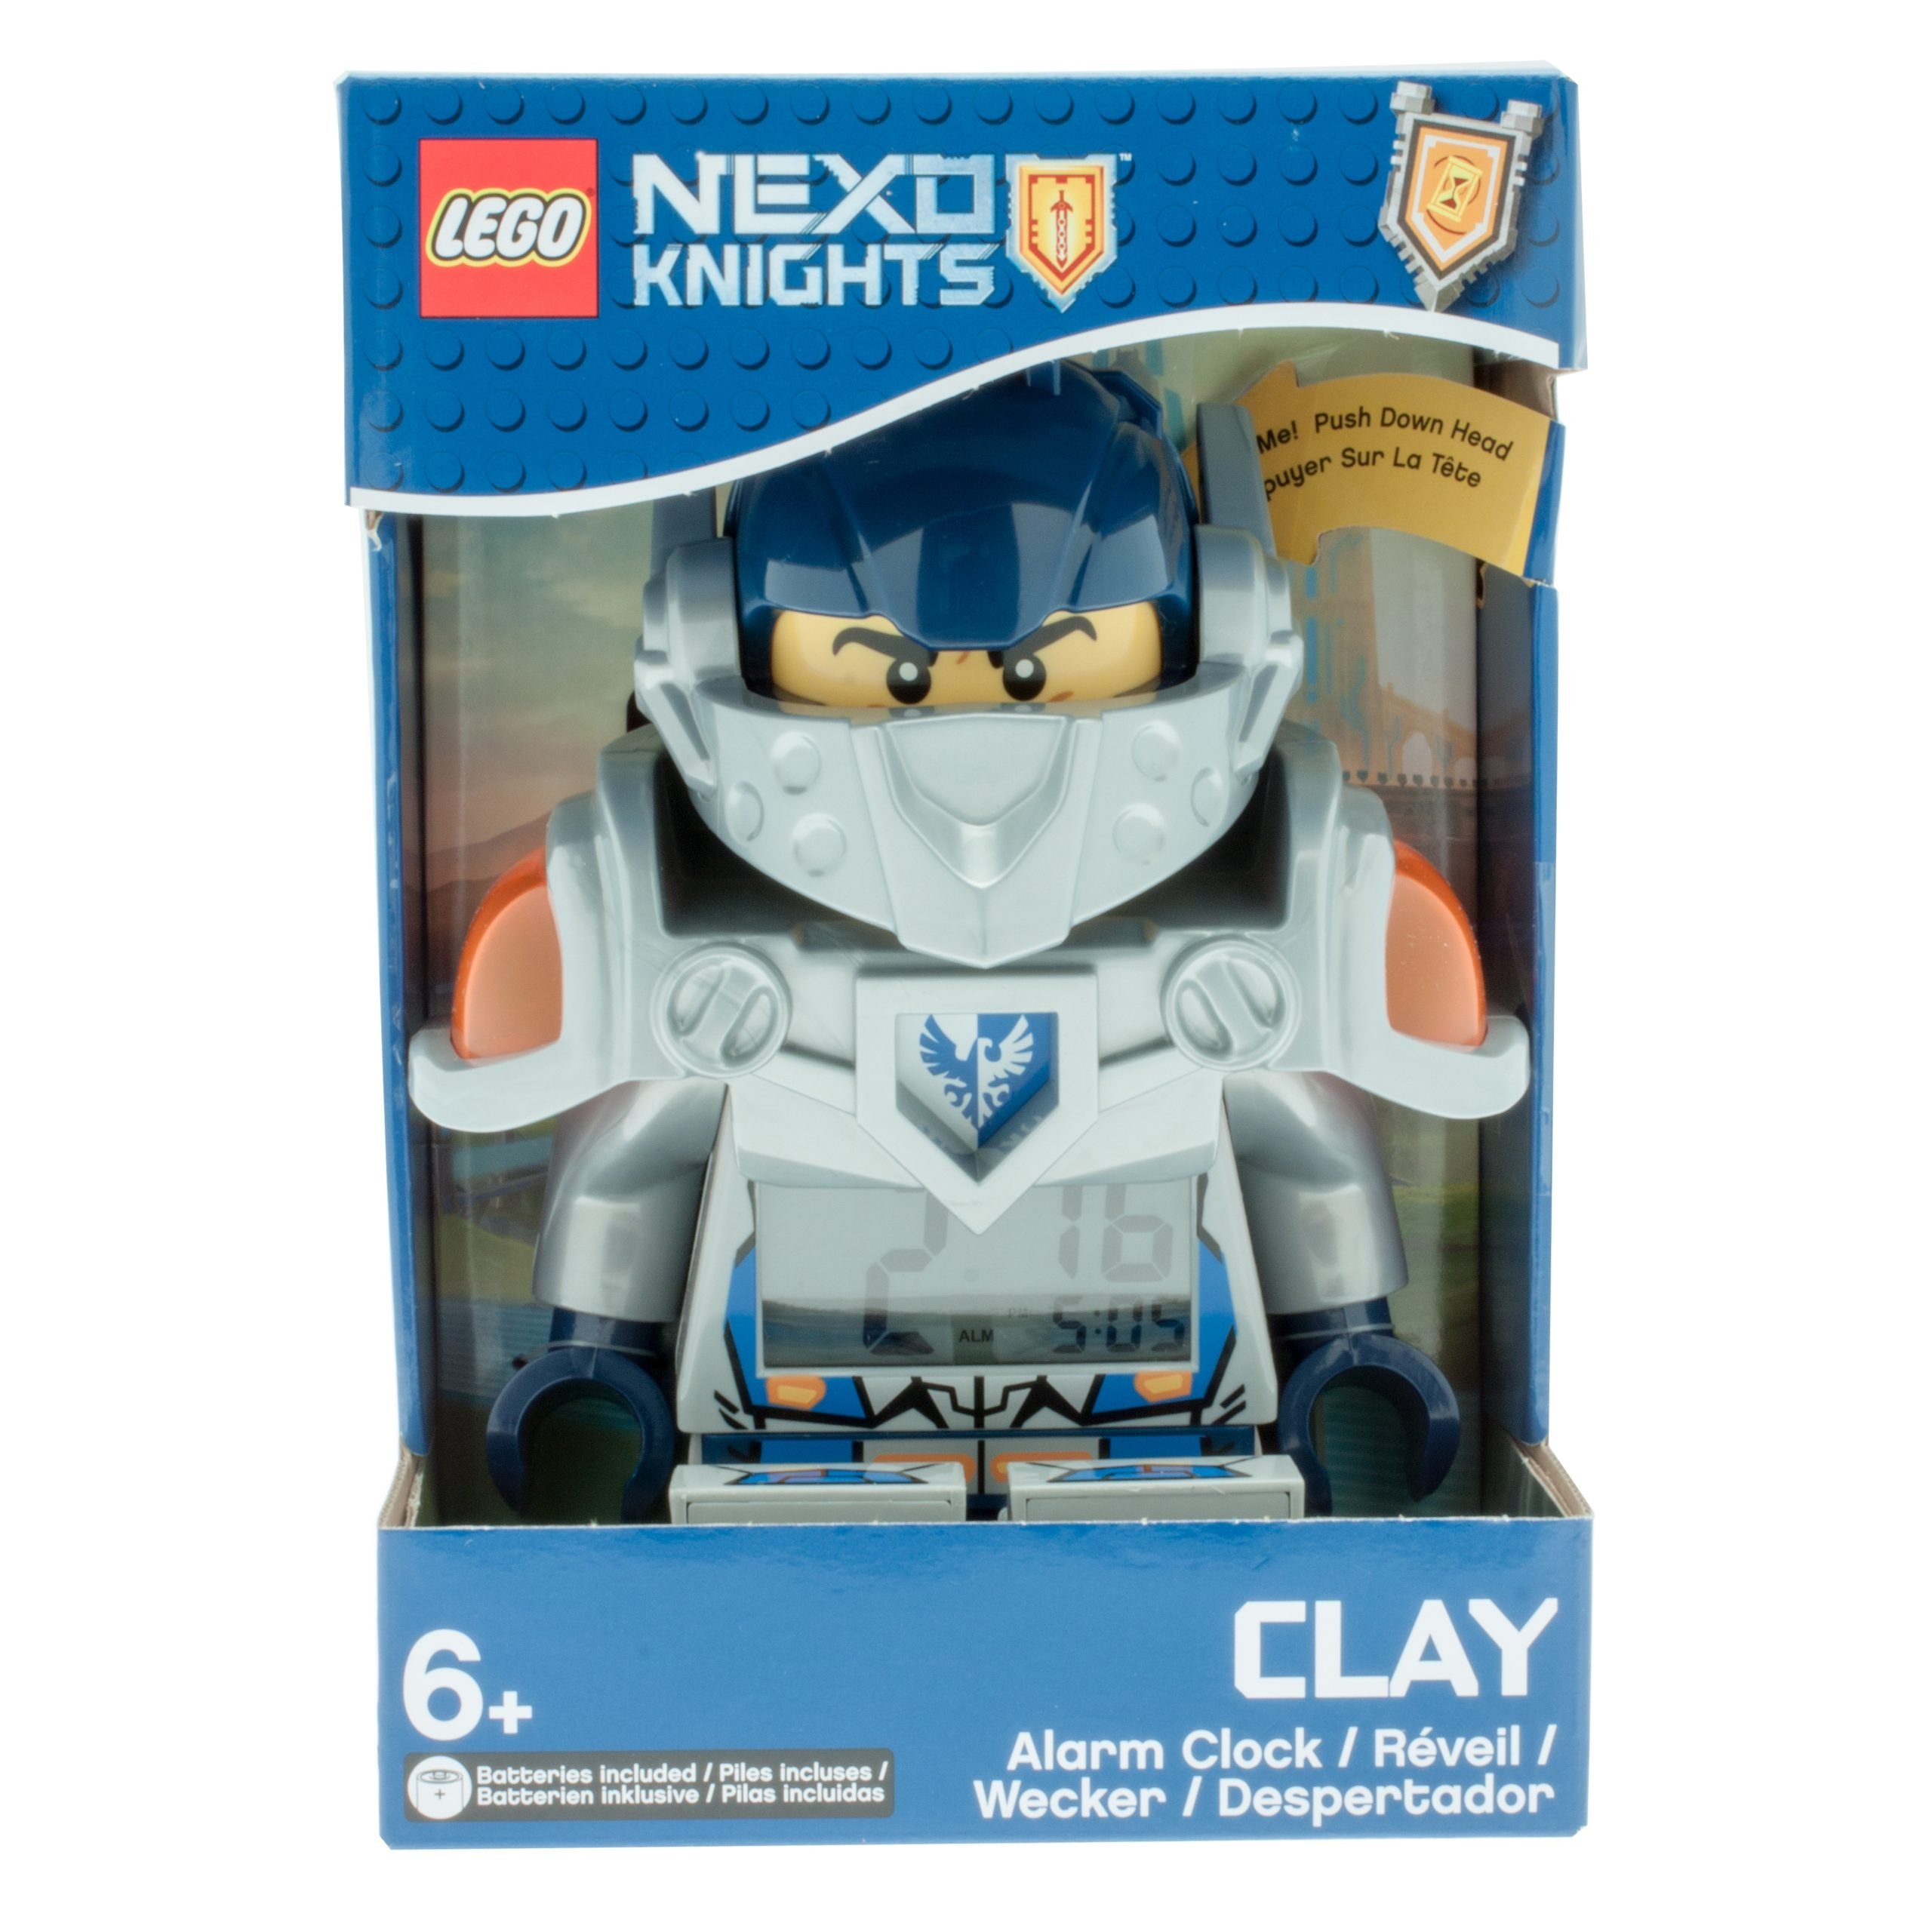 lego 5005115 nexo knights clay minifigure alarm clock scaled